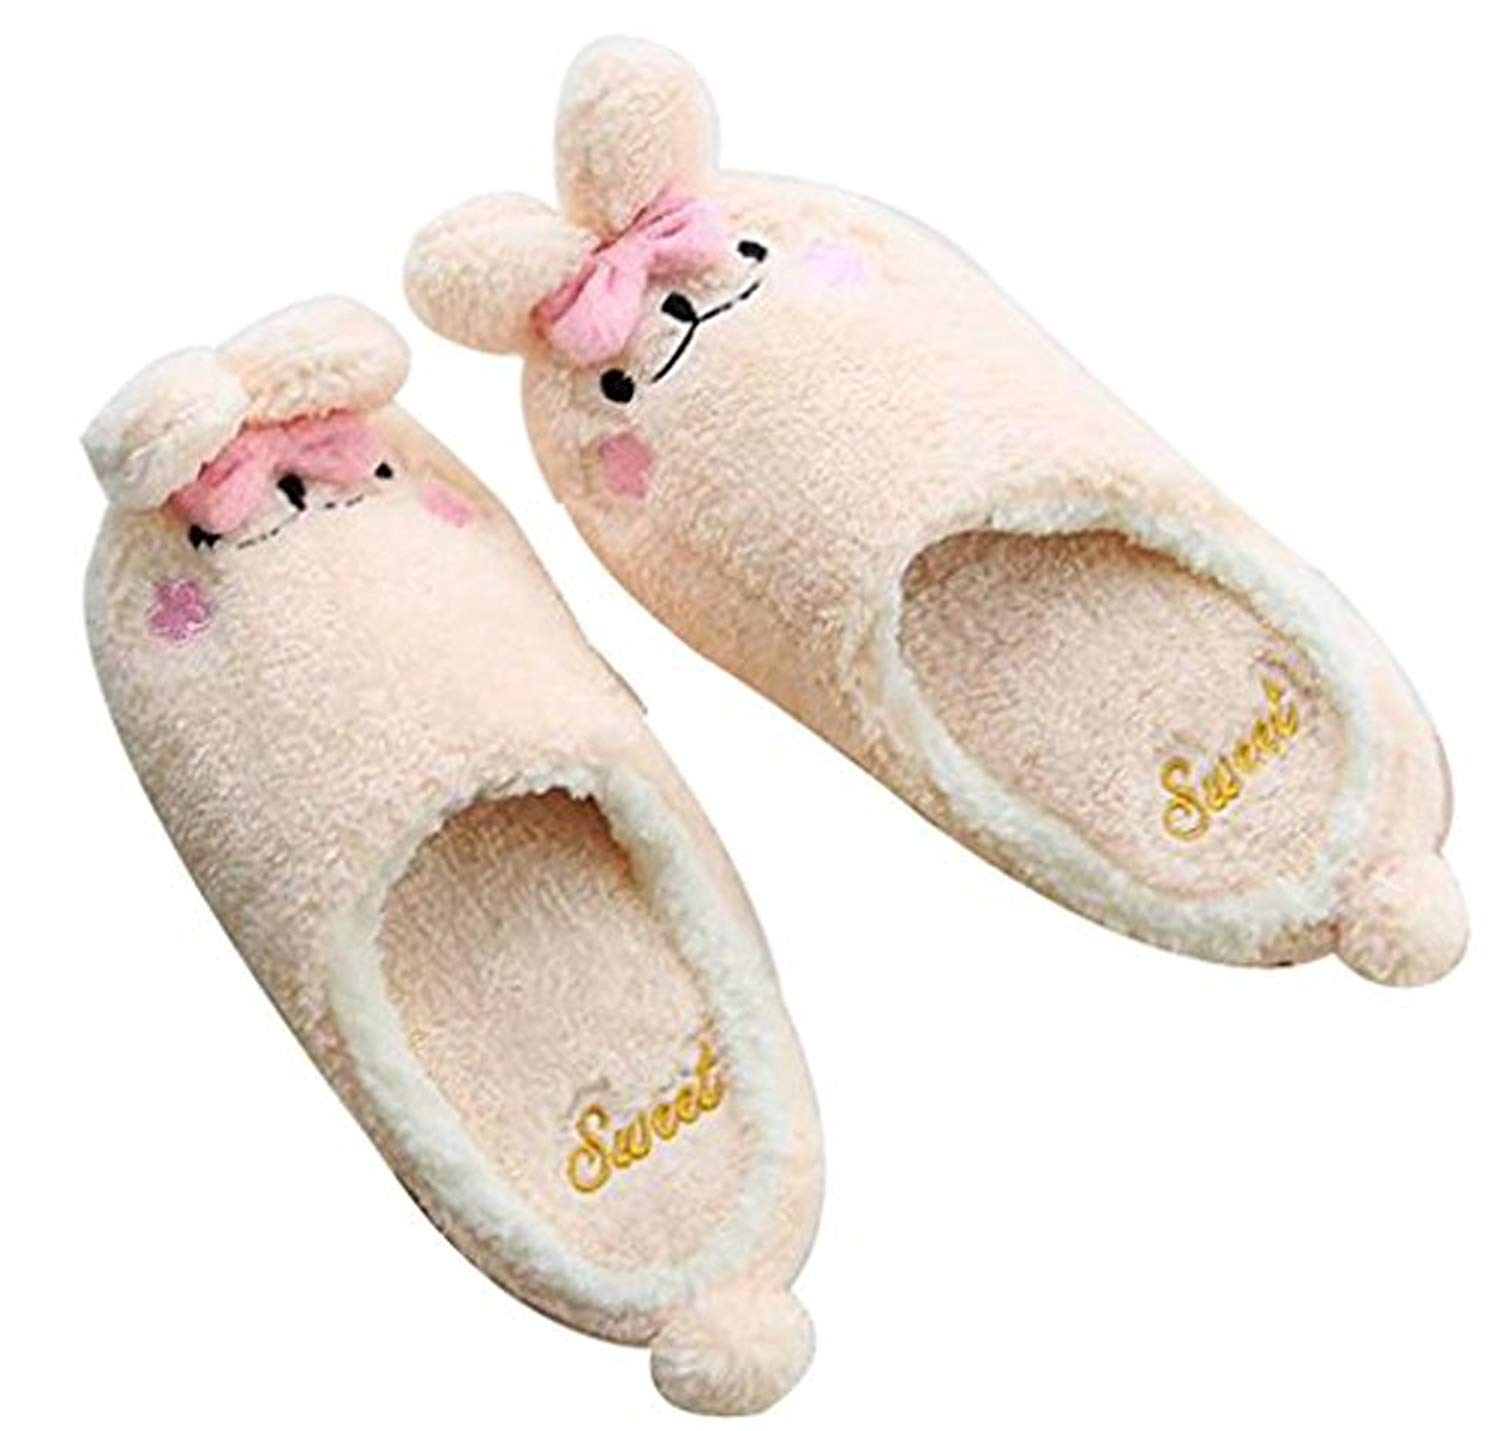 030f2383aab Get Quotations · FreLO Women s Pink Plush Bunny Cute Winter Slippers  Slippers